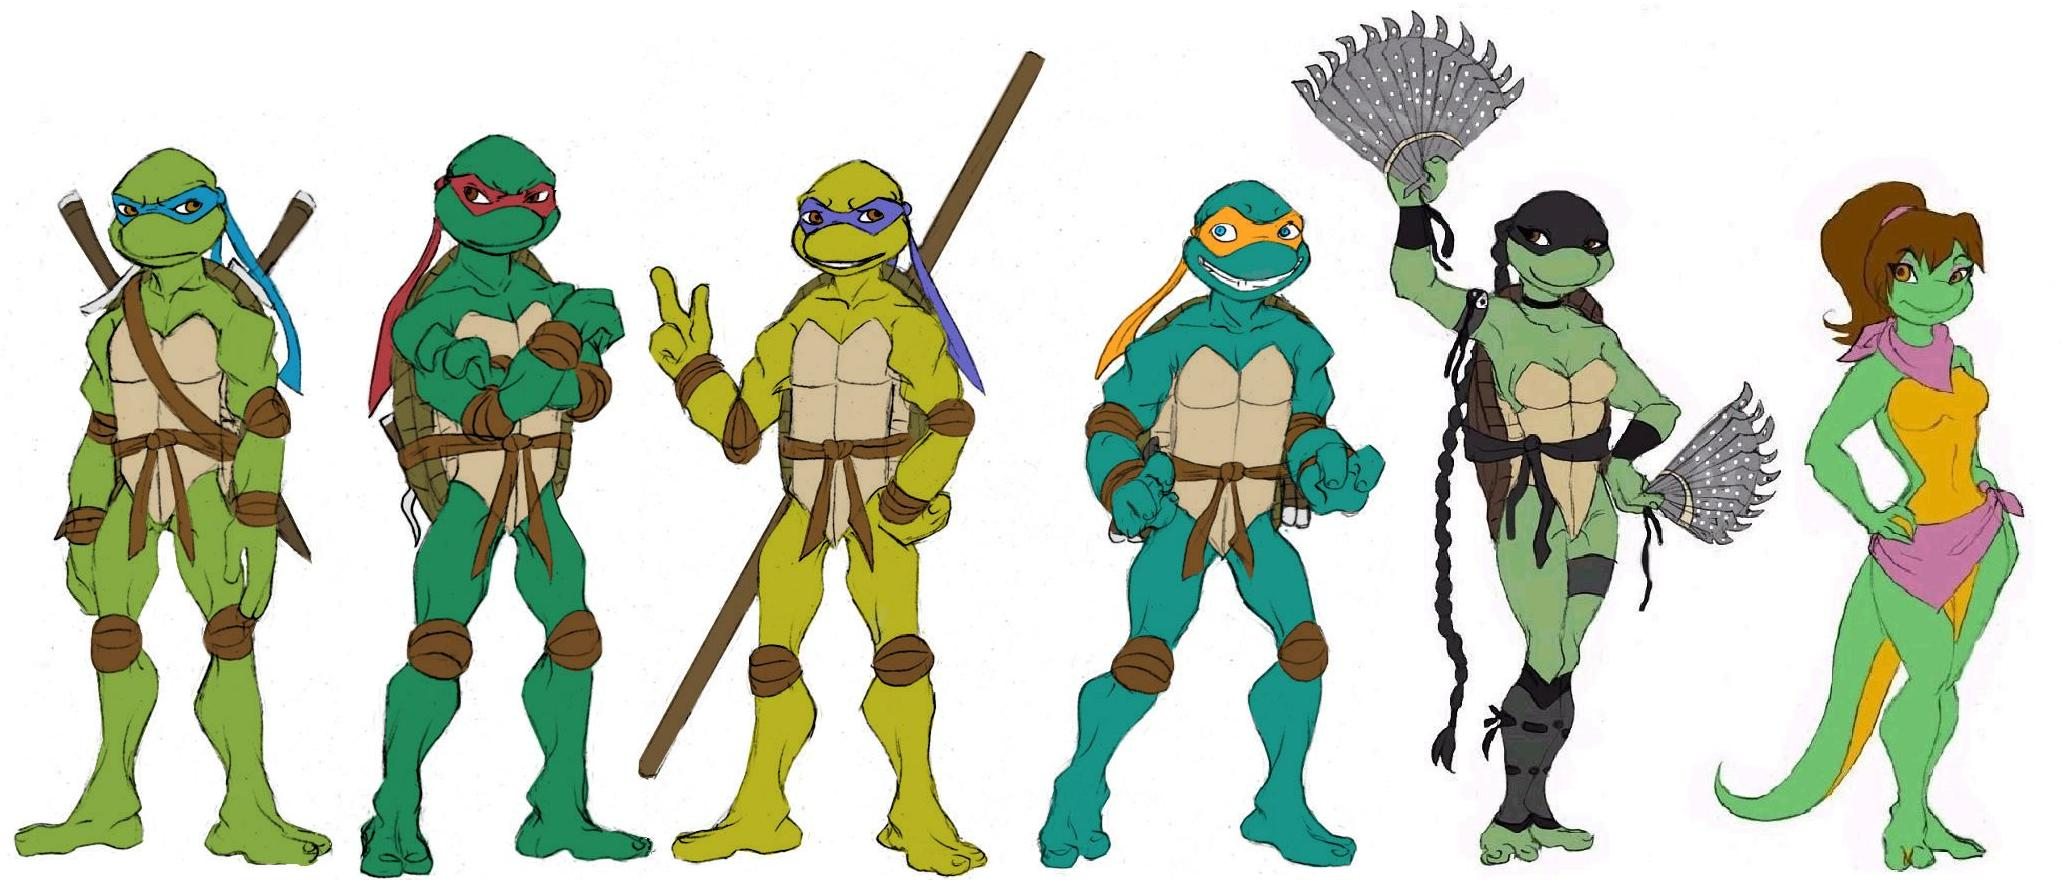 Line Art Ninja Turtles : Ninja turtles line up by lily pily on deviantart